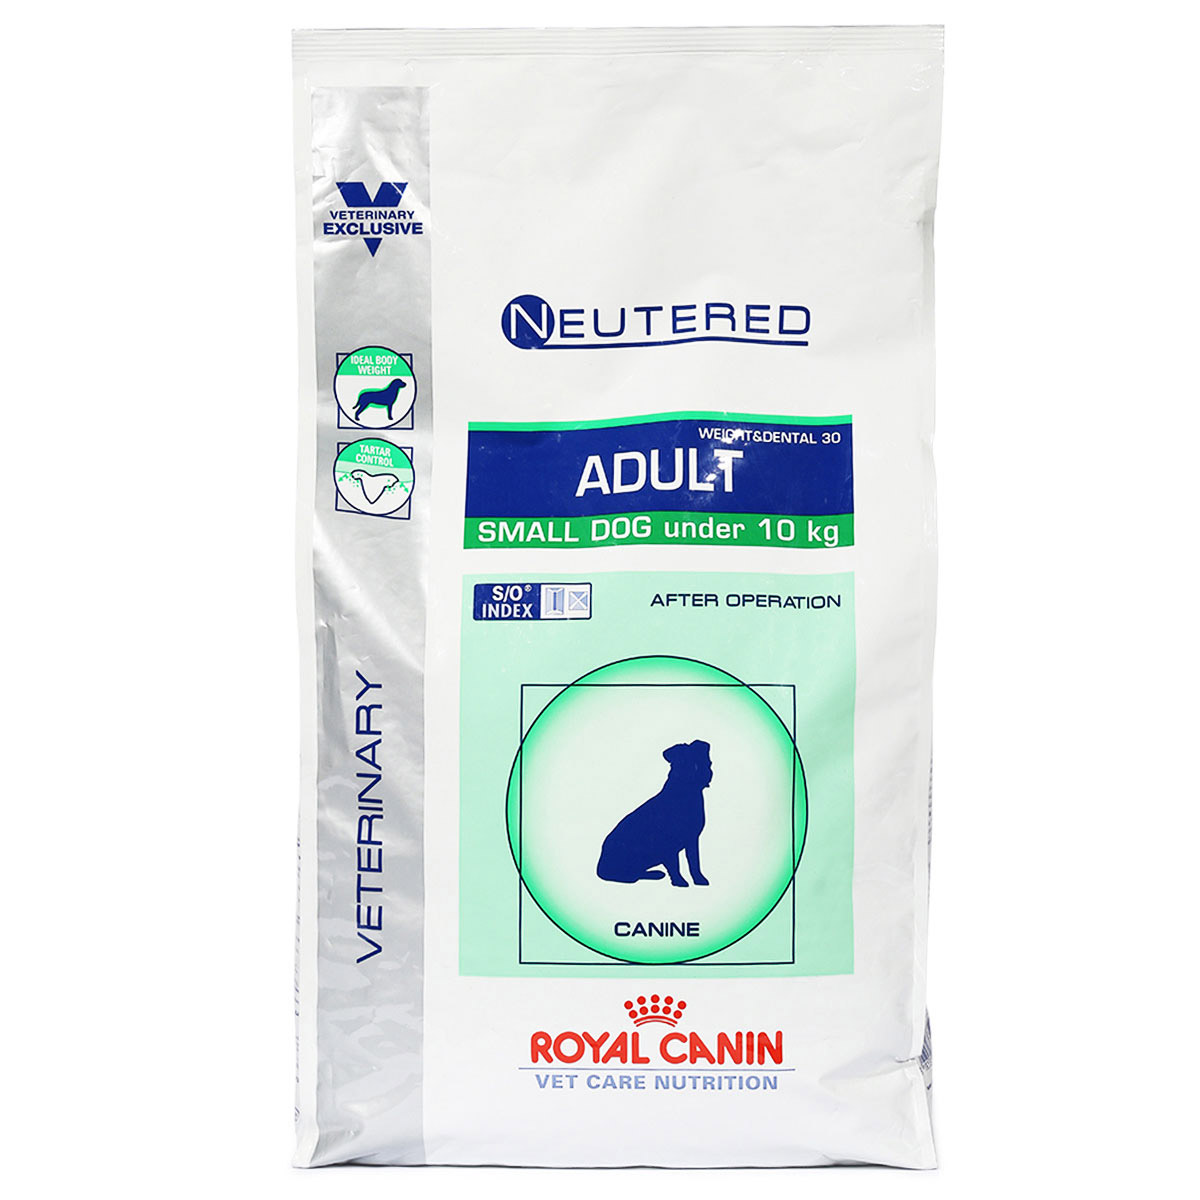 royal canin vet care neutered adult small dog weight dental 30. Black Bedroom Furniture Sets. Home Design Ideas